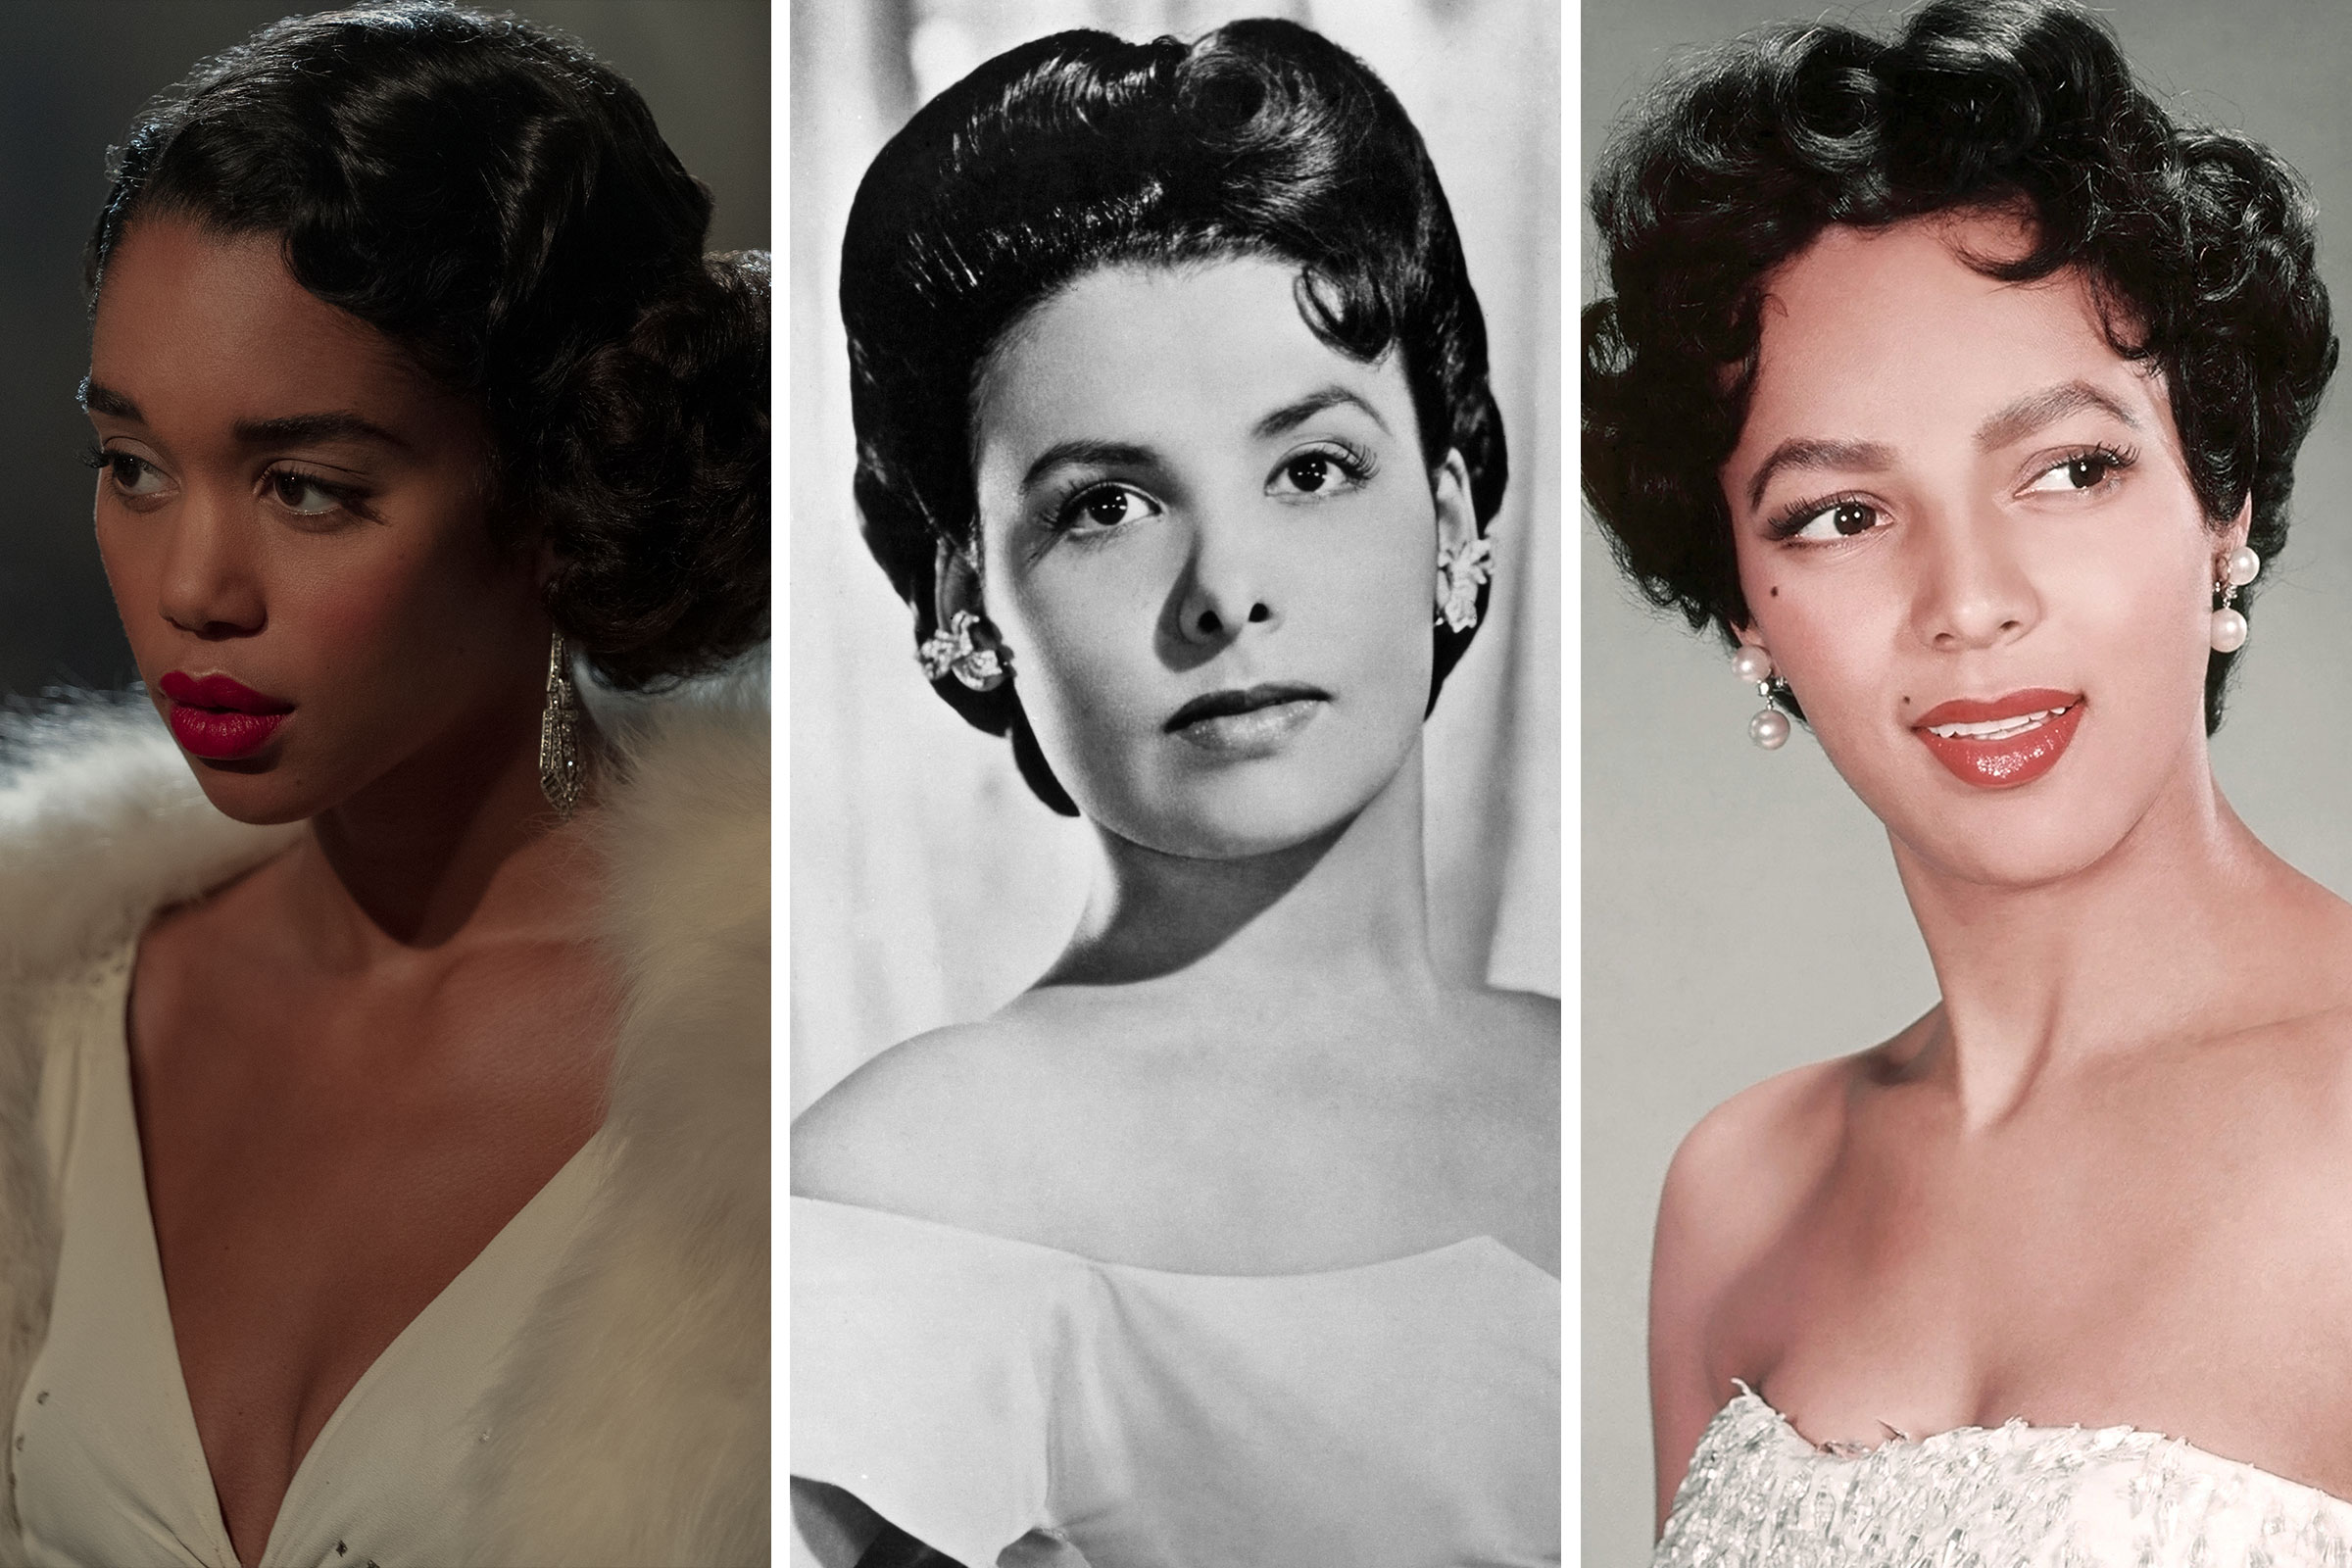 Laura Harrier as the character Camille in 'Hollywood'; Lena Horne circa 1945; Dorothy Dandridge circa 1955